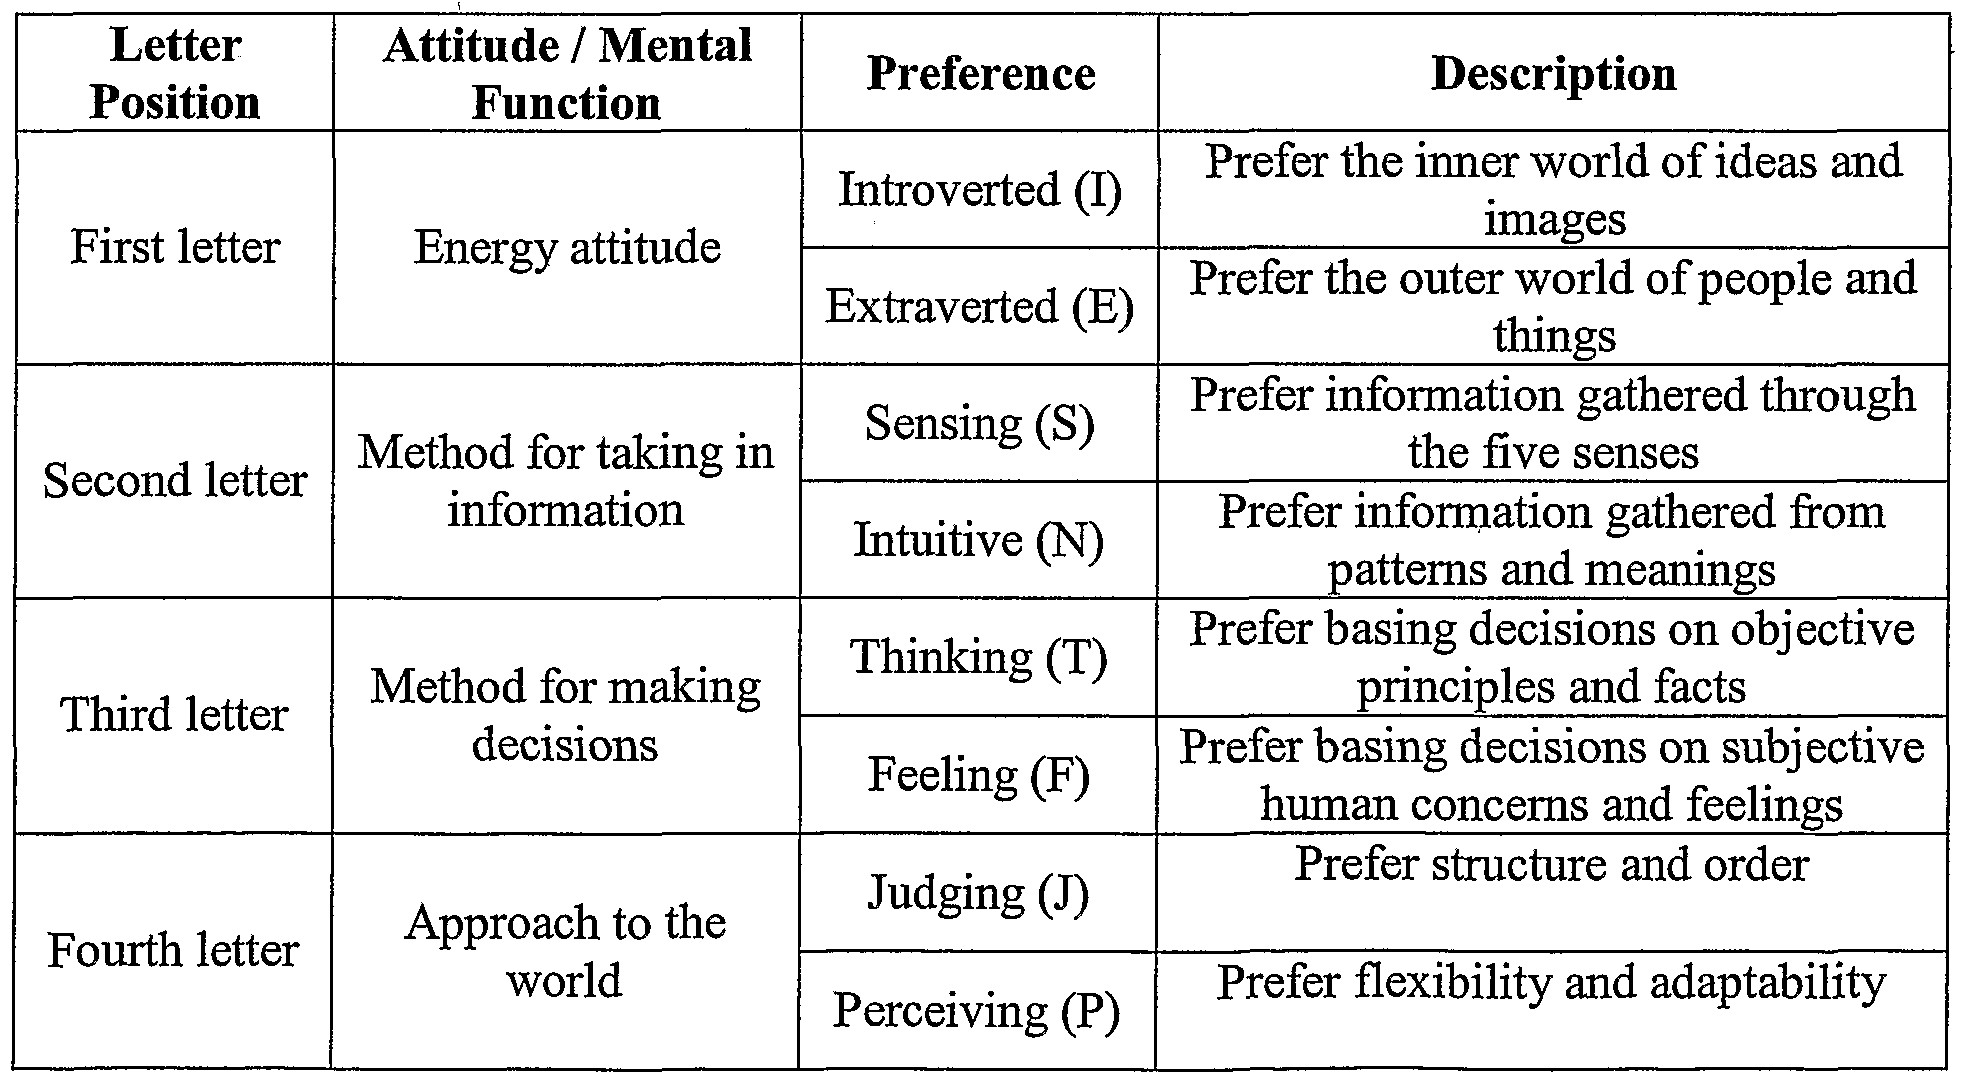 for more information on the basics of the myers briggs personality types try accessing 16 personalities or truity both of these sites provide basic